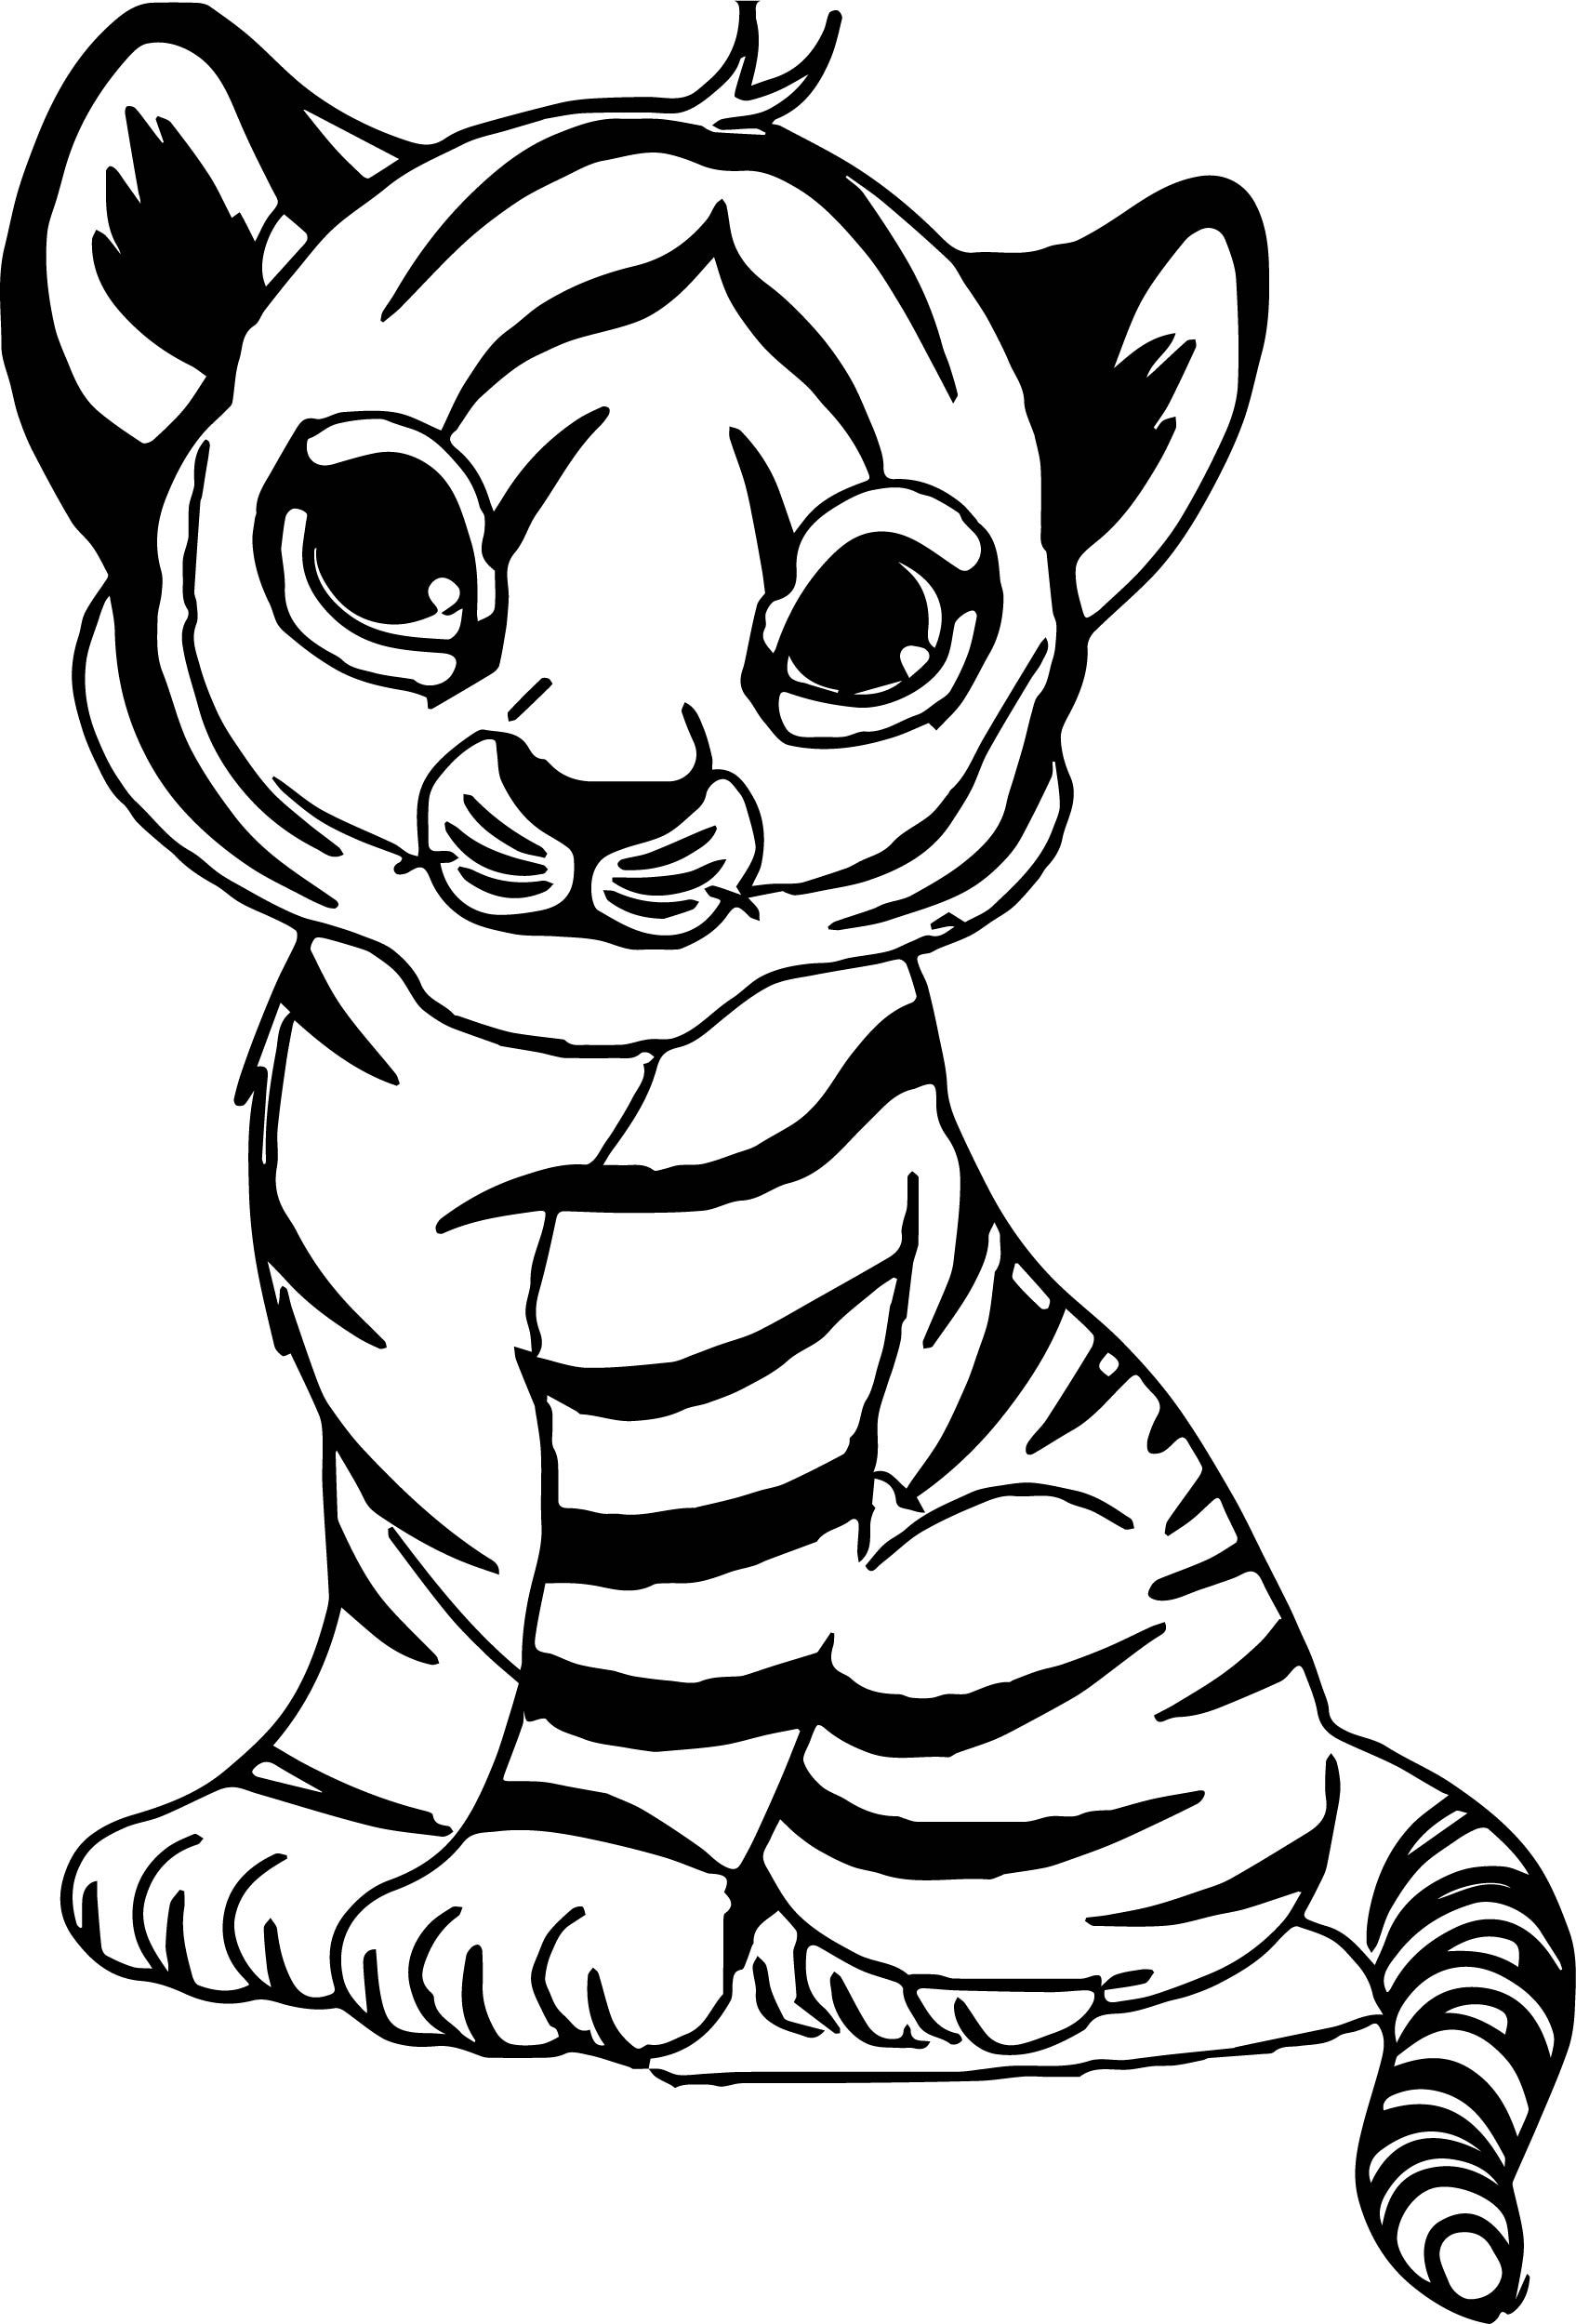 printable pictures of tigers nice cute baby tiger coloring page zoo animals baby of pictures tigers printable